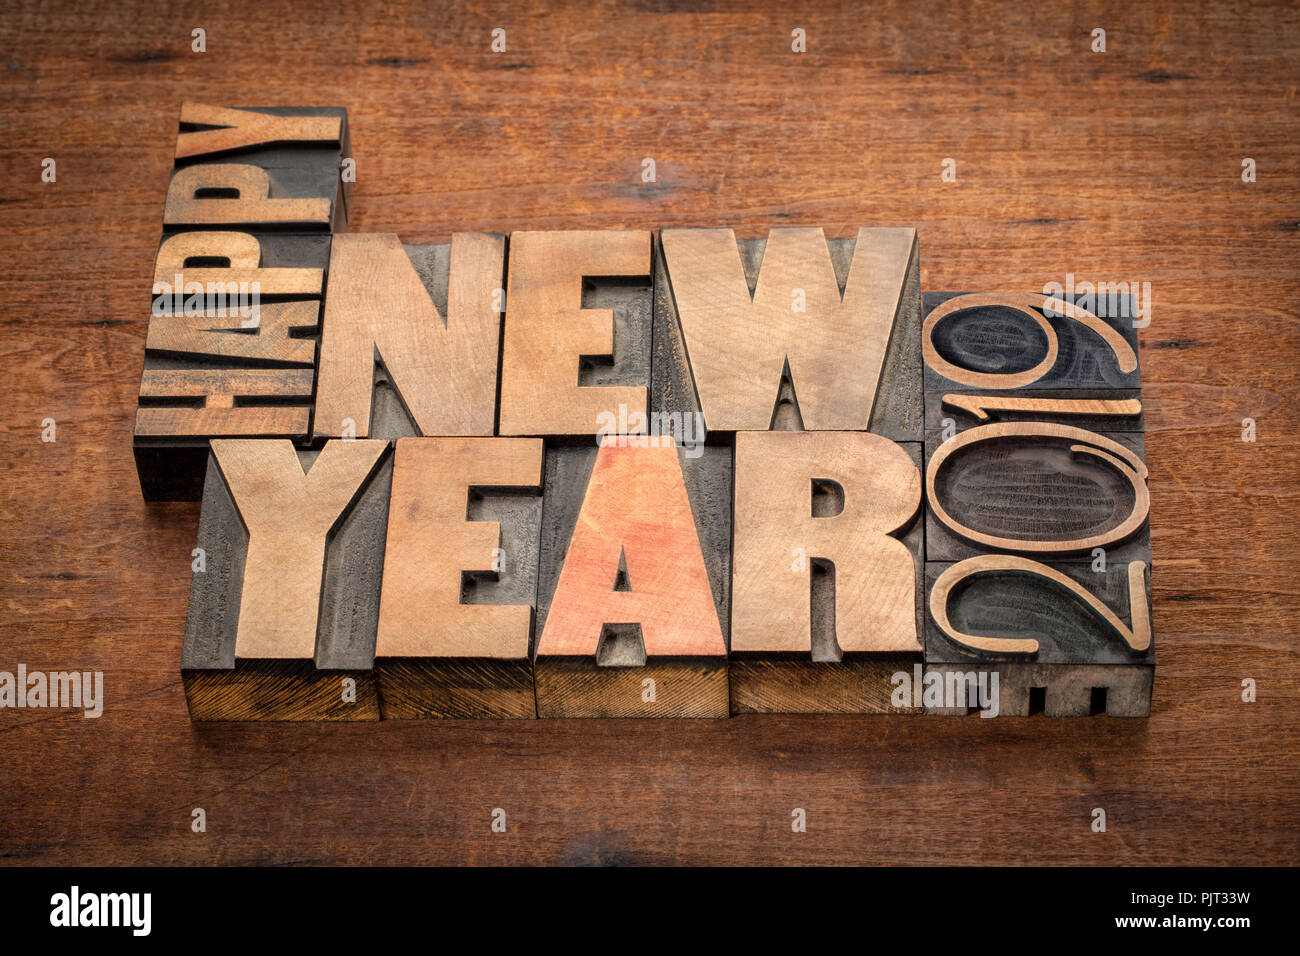 happy new year 2019 greeting card word abstract in vintage letterpress wood type blocks on a grunge wooden background